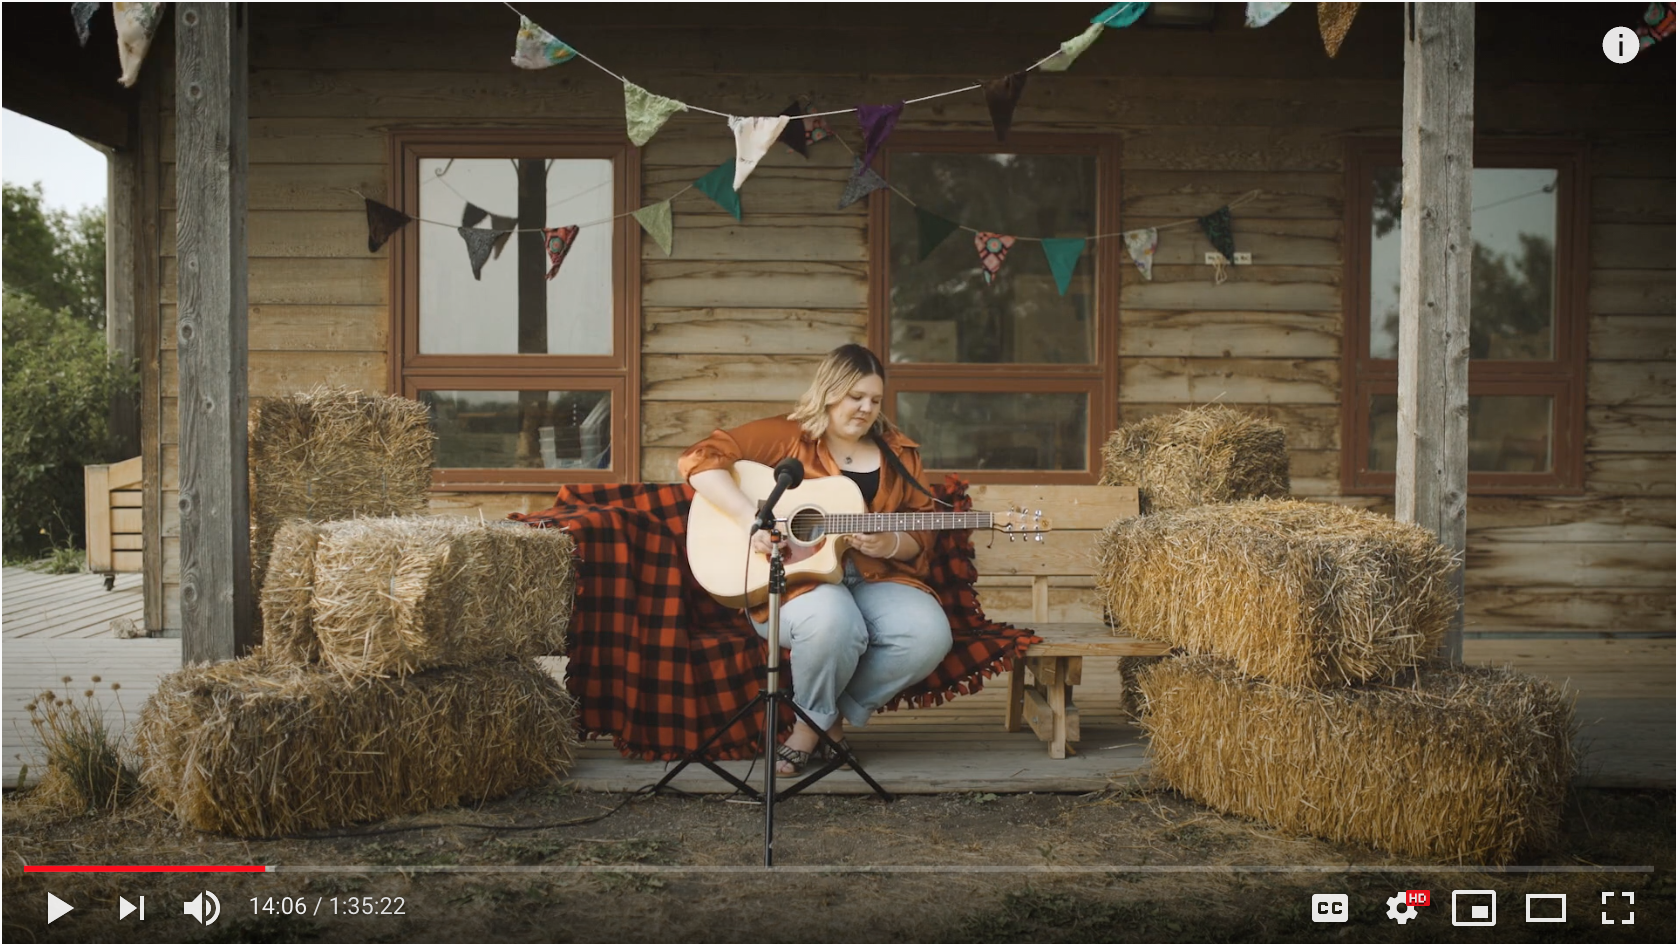 A screenshot of the Livestream on Youtube. Lana Winterhalt plays guitar surrounded by haybales outdoors.